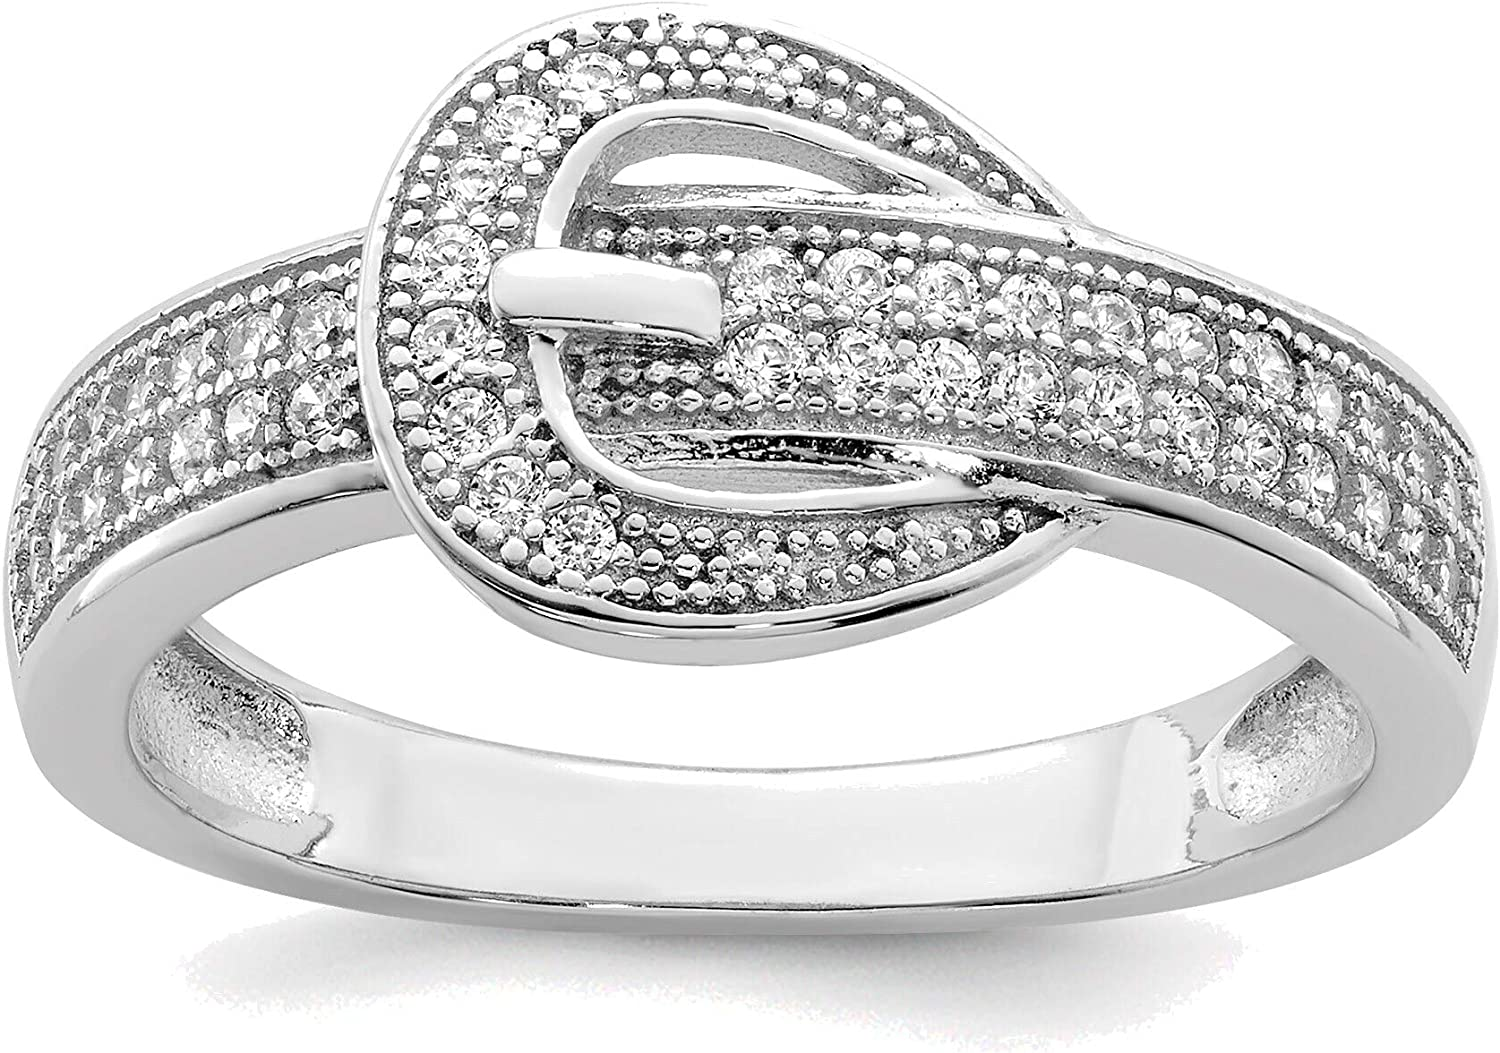 Outlet SALE Bonyak Jewelry Solid Sterling Silver Ri CZ Very popular Buckle Rhodium-Plated